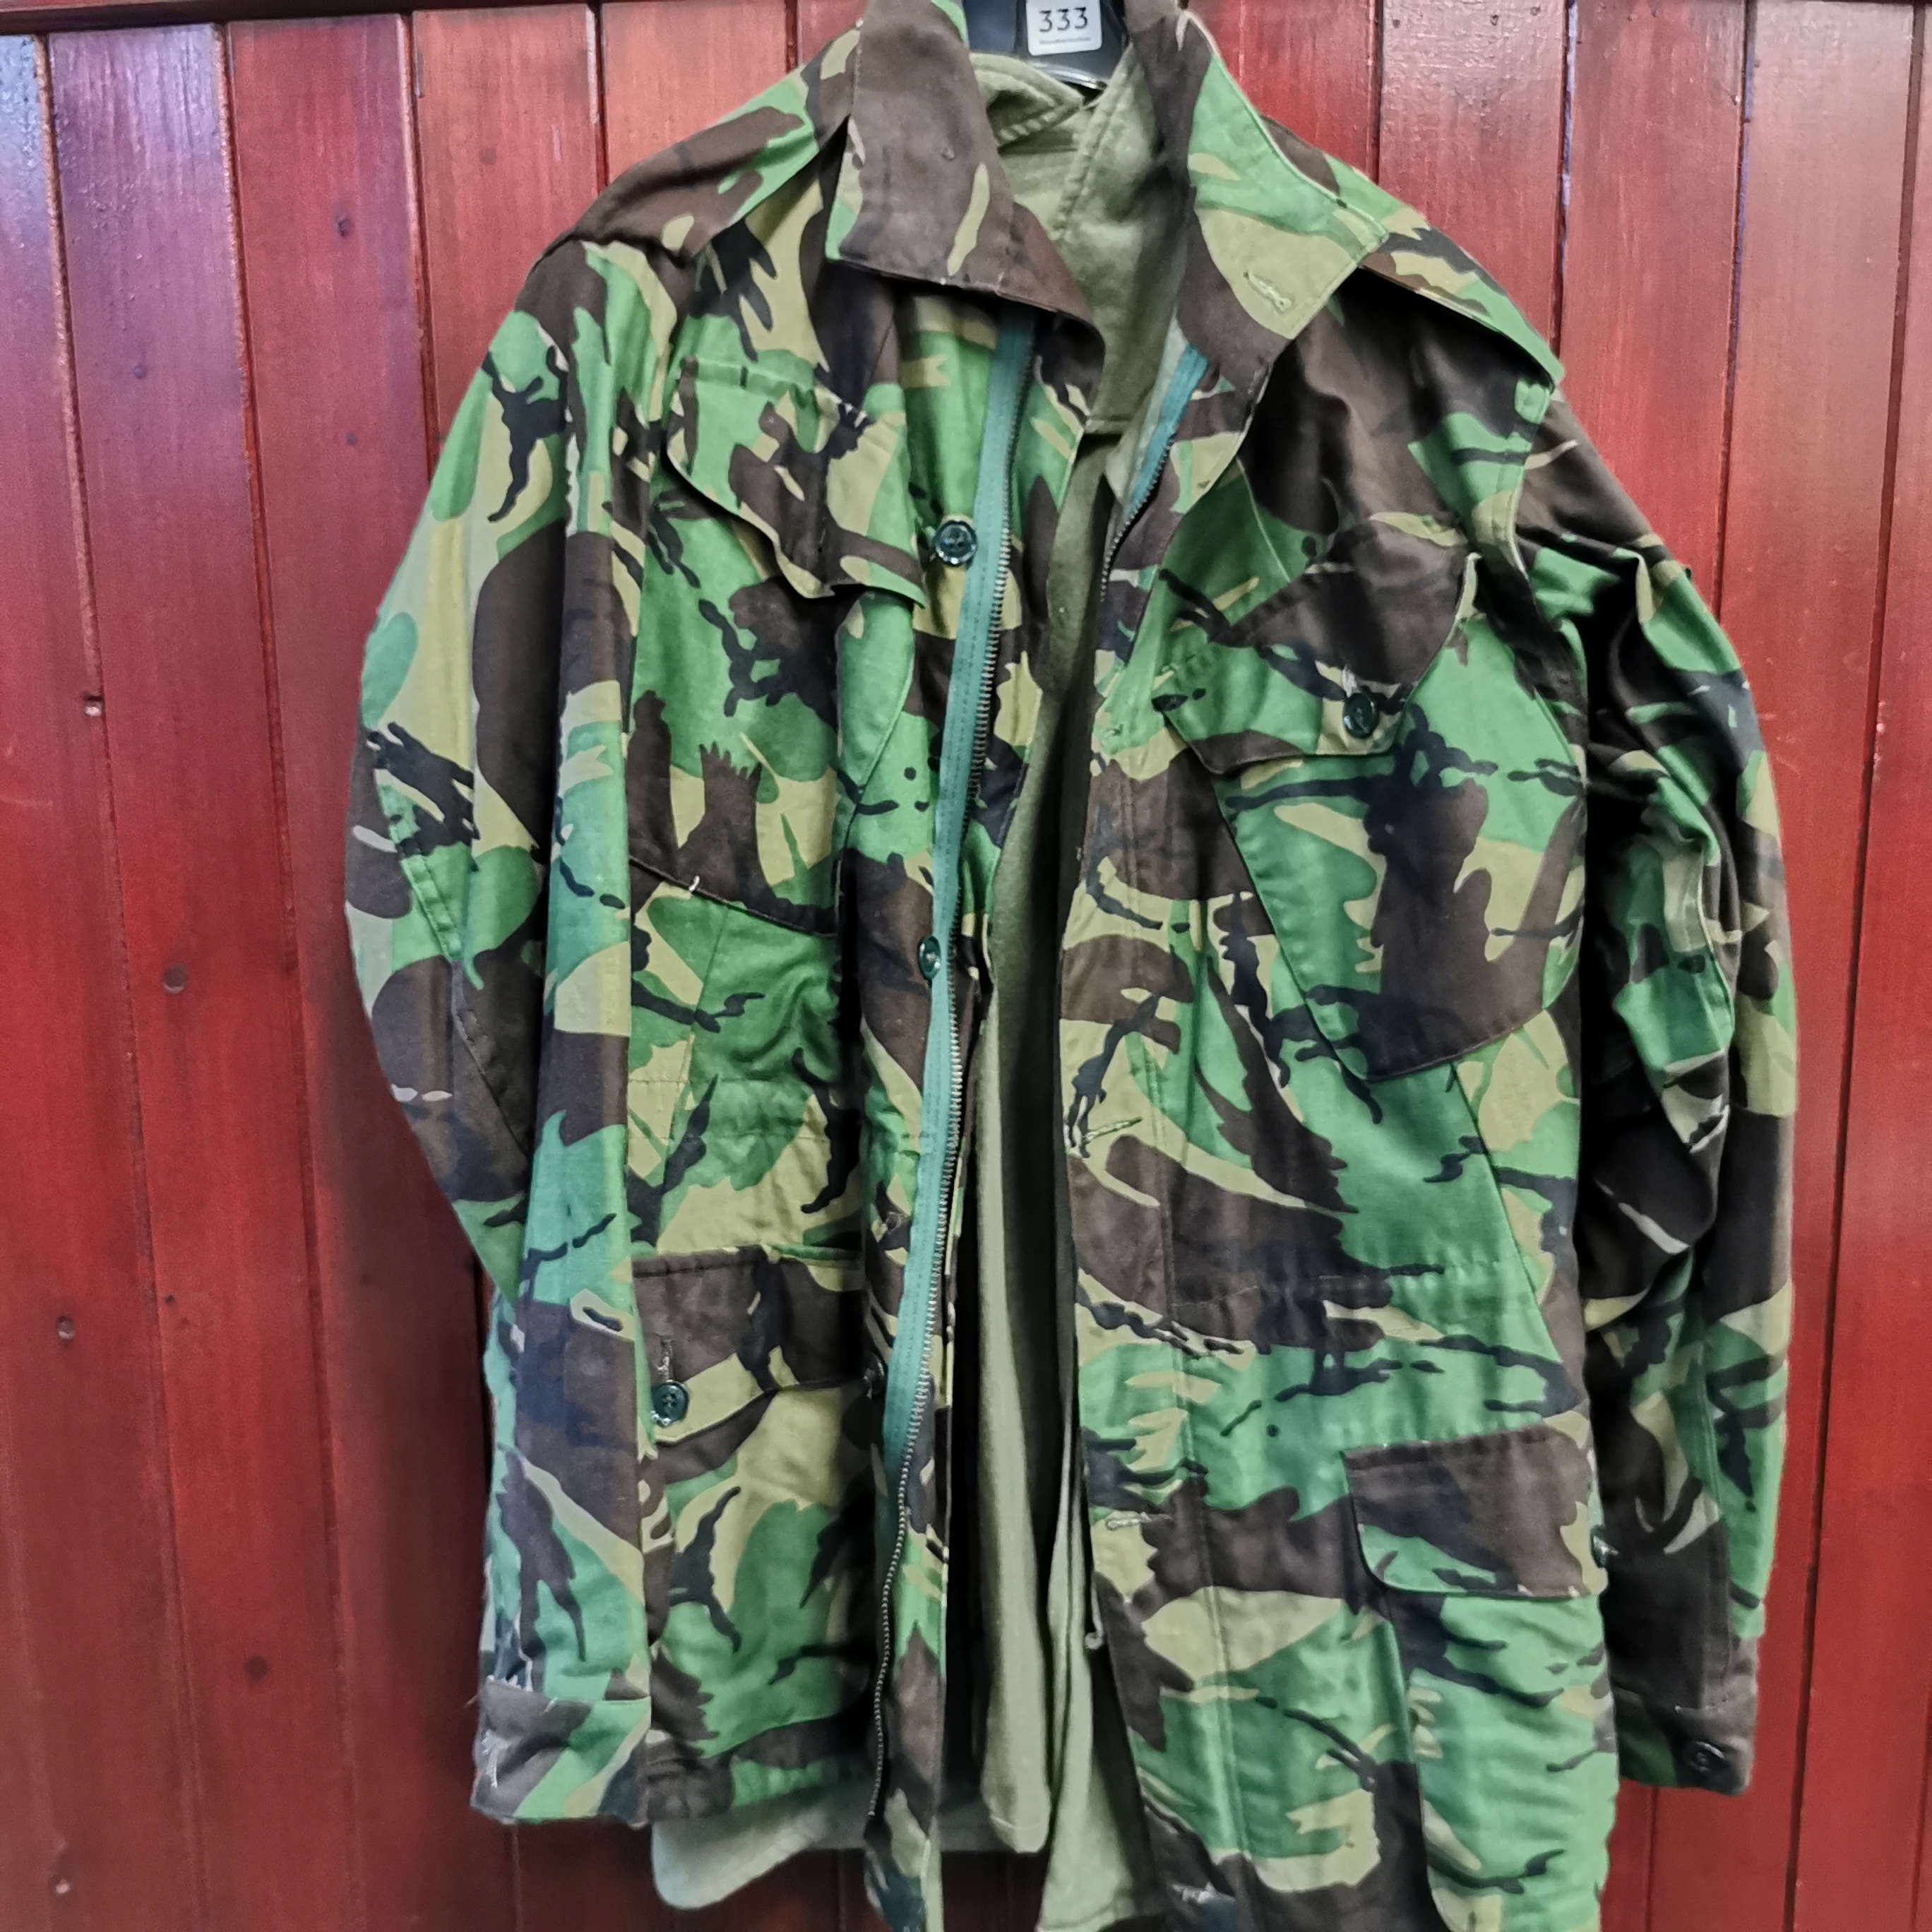 Lot 333 - QTY OF MILITARY JACKETS